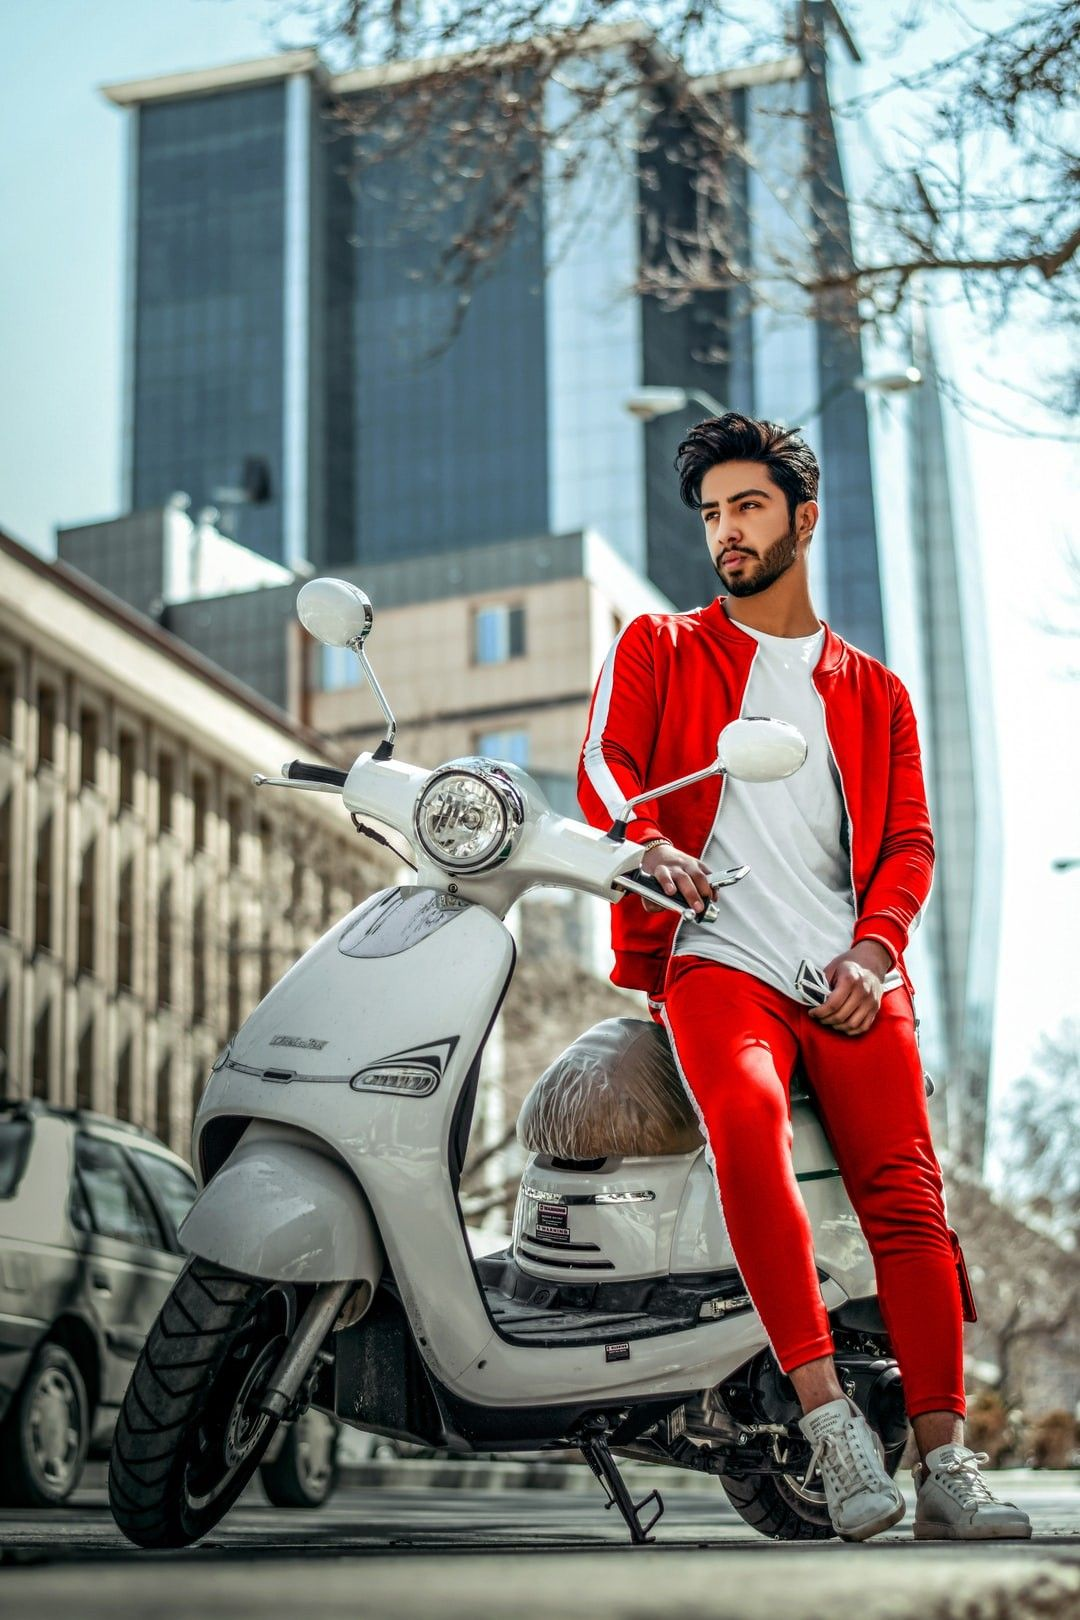 Top 10 Best Scooter for Men in 2020 Best scooter, Enell